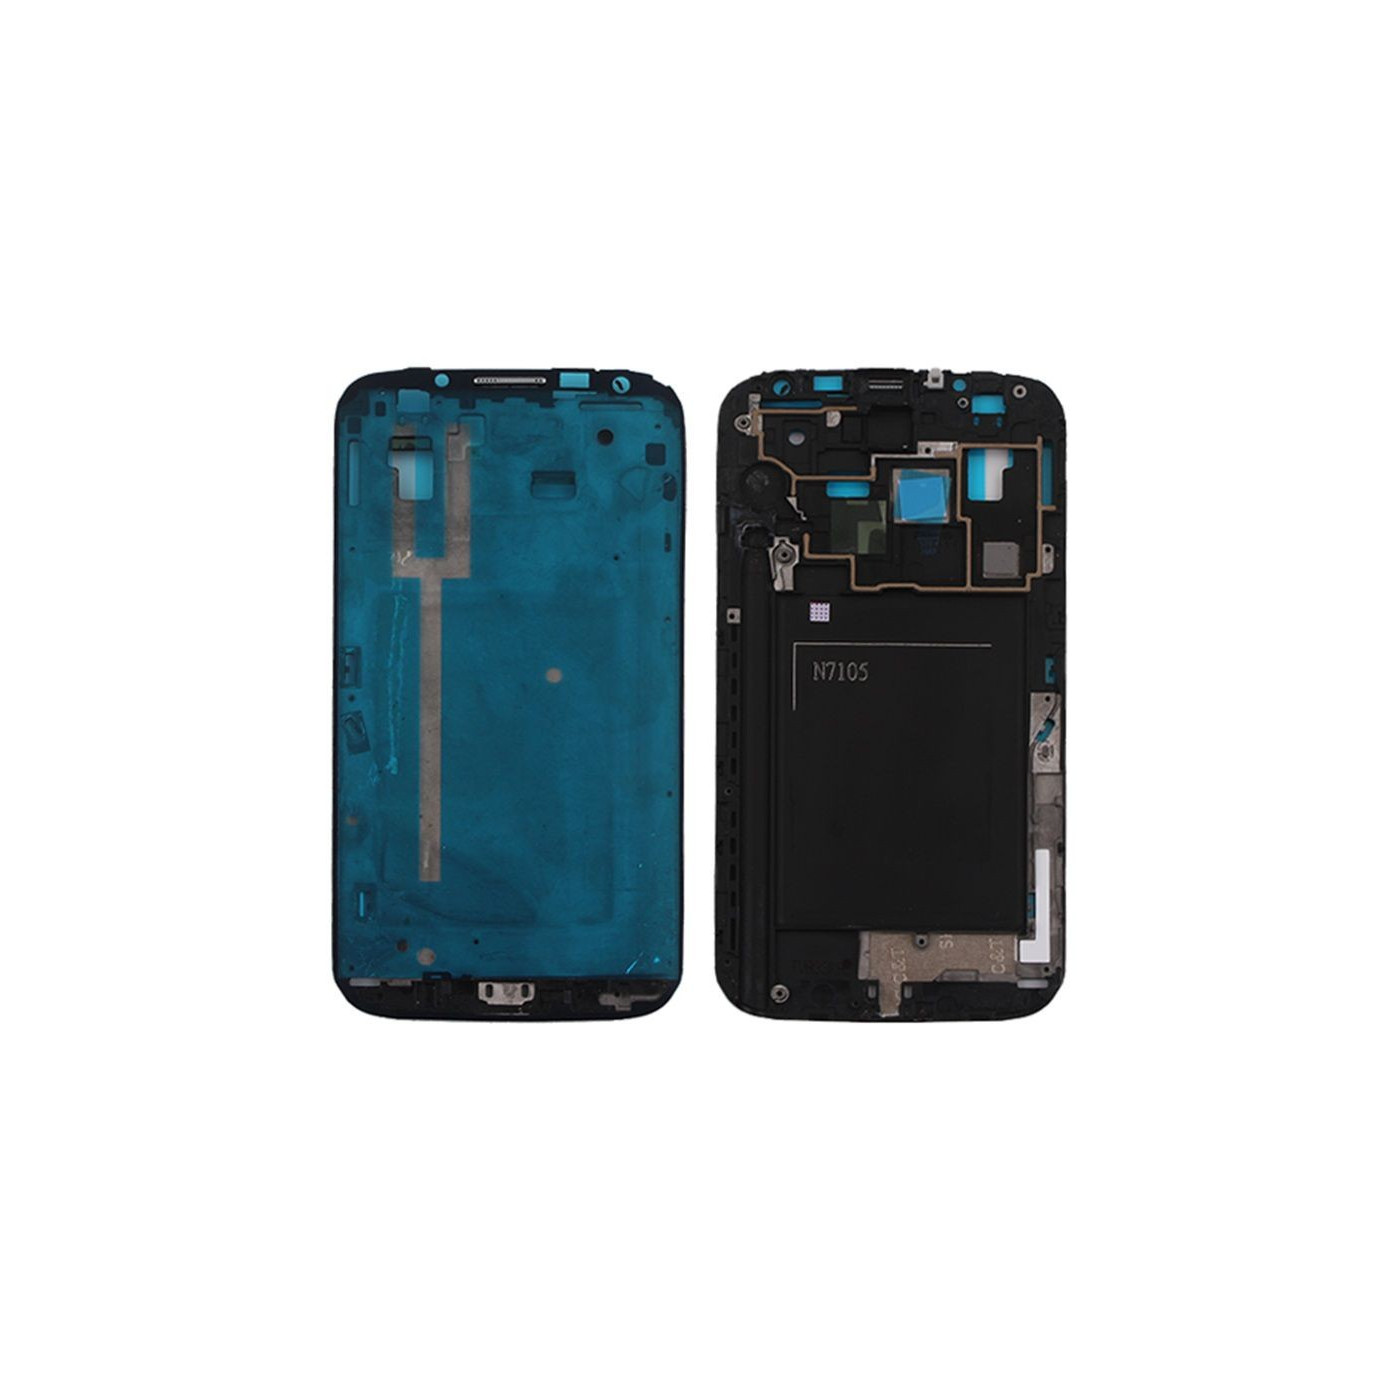 Frame Frame Shell Samsung Galaxy Note II LTE N7105 Marco central plateado